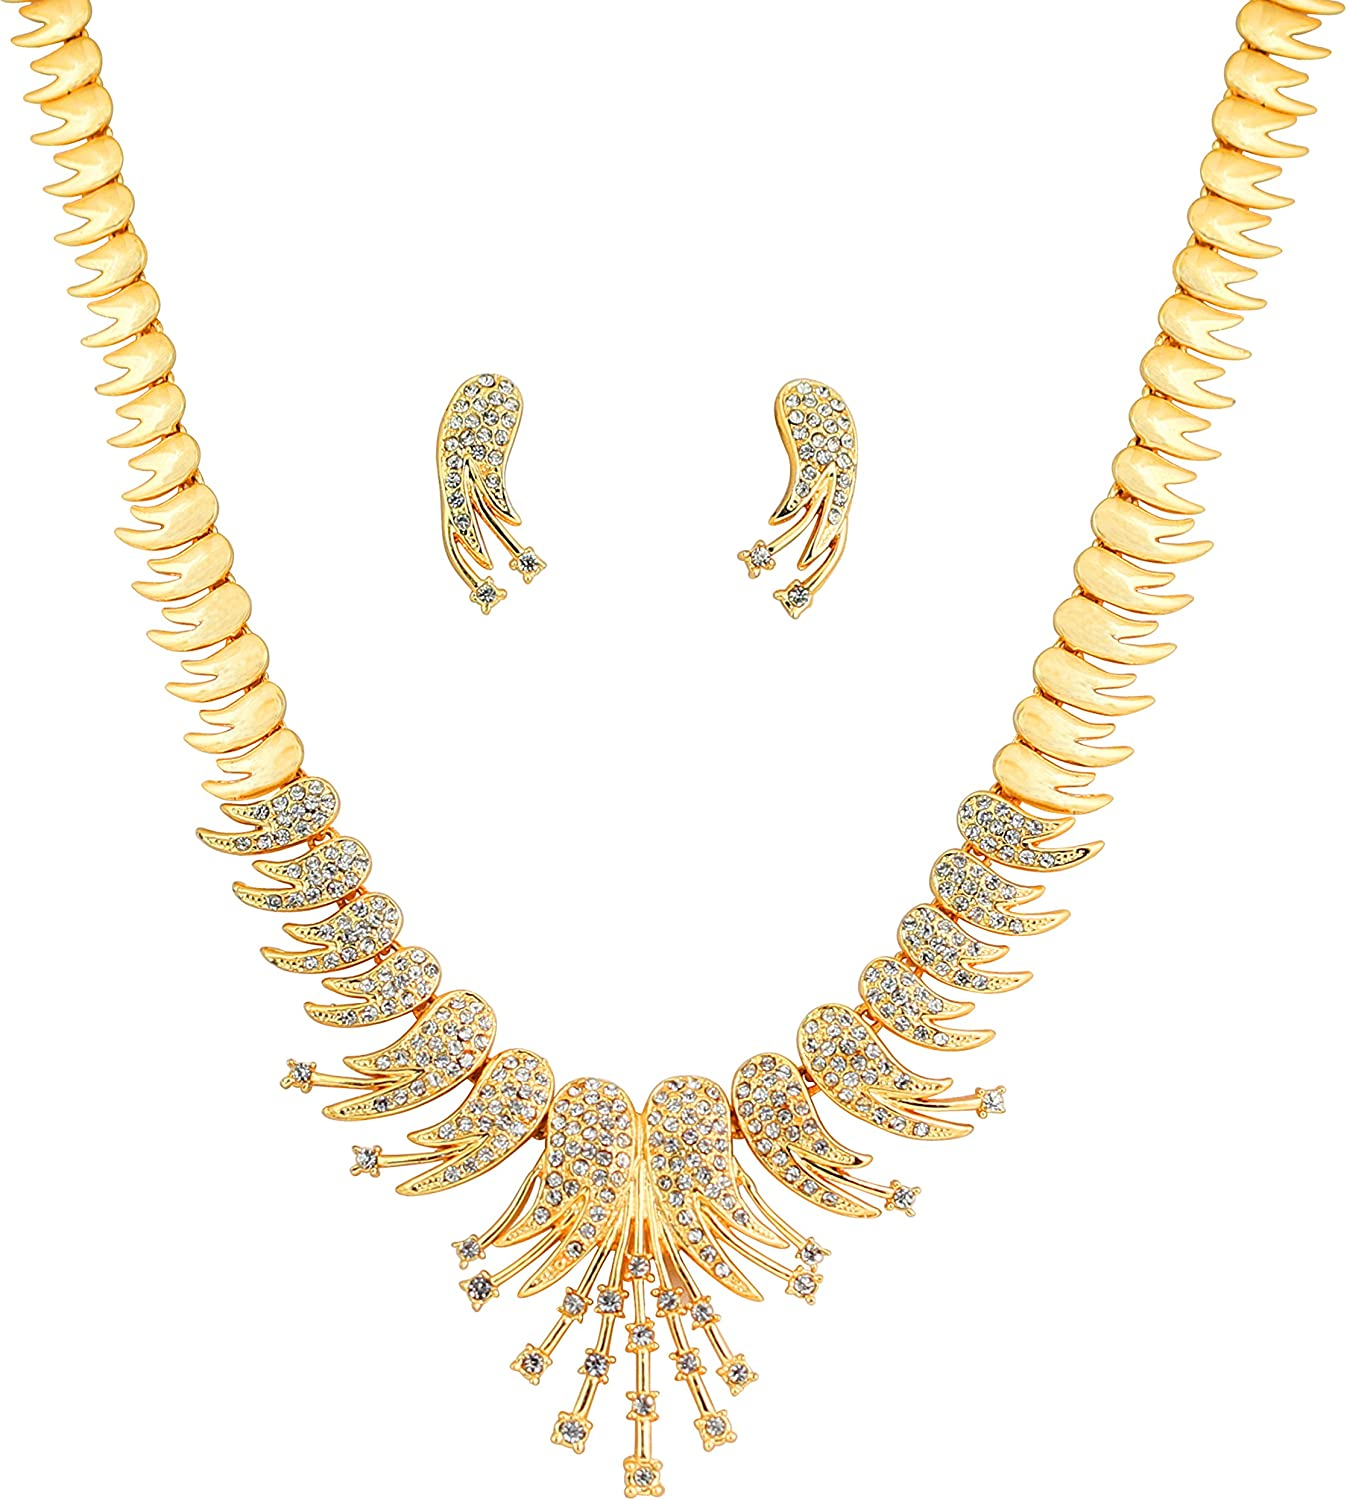 Touchstone Hollywood Glamour Jazzy and Sparkling Feather Theme White Rhinestone Bridal Designer Jewelry Necklace Set for Women